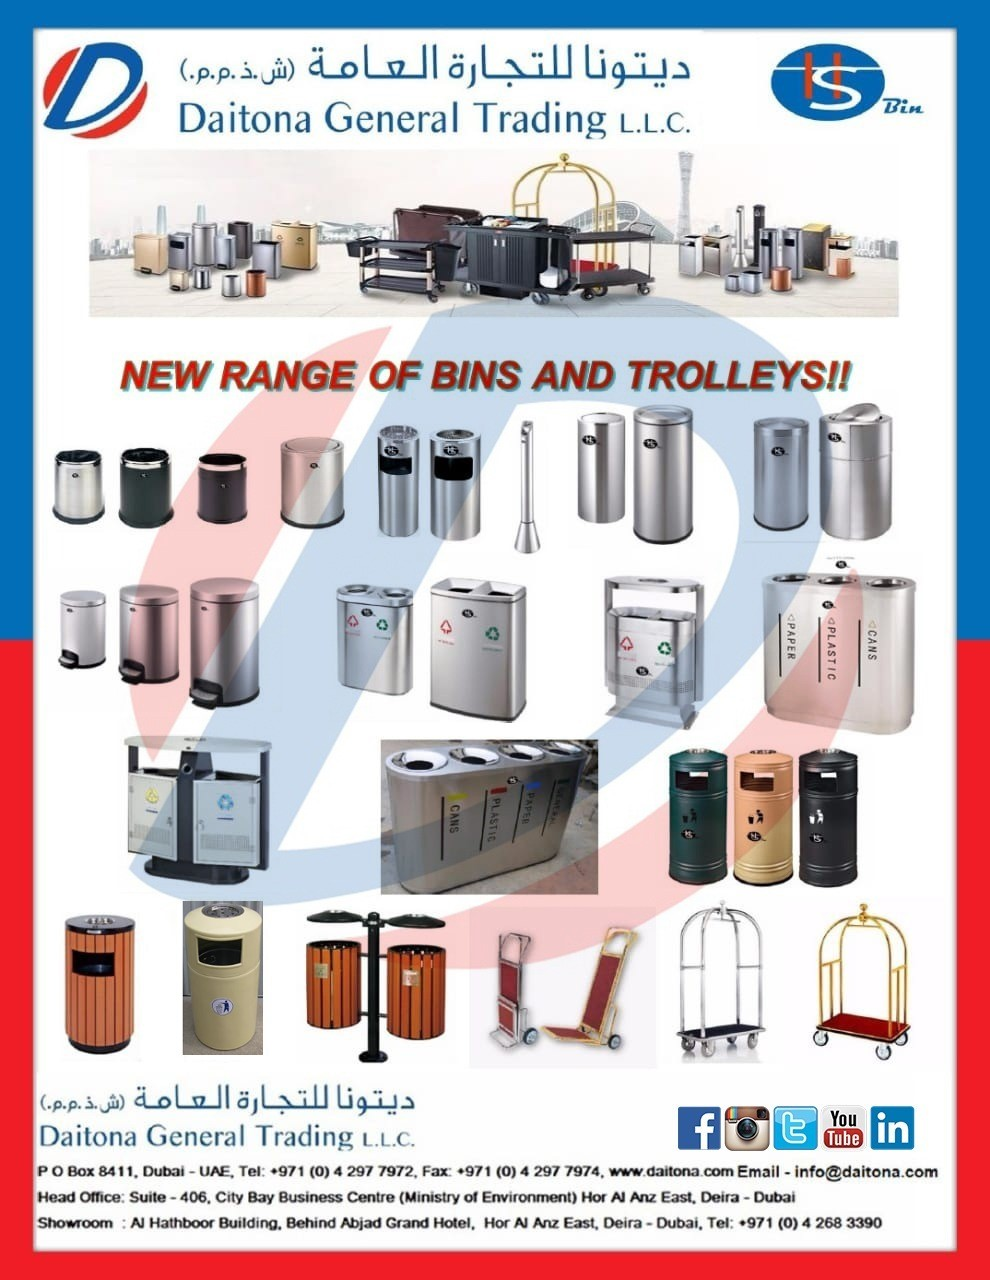 Hs Stainless Steel Bins and Trolleys New Stock was Arrived